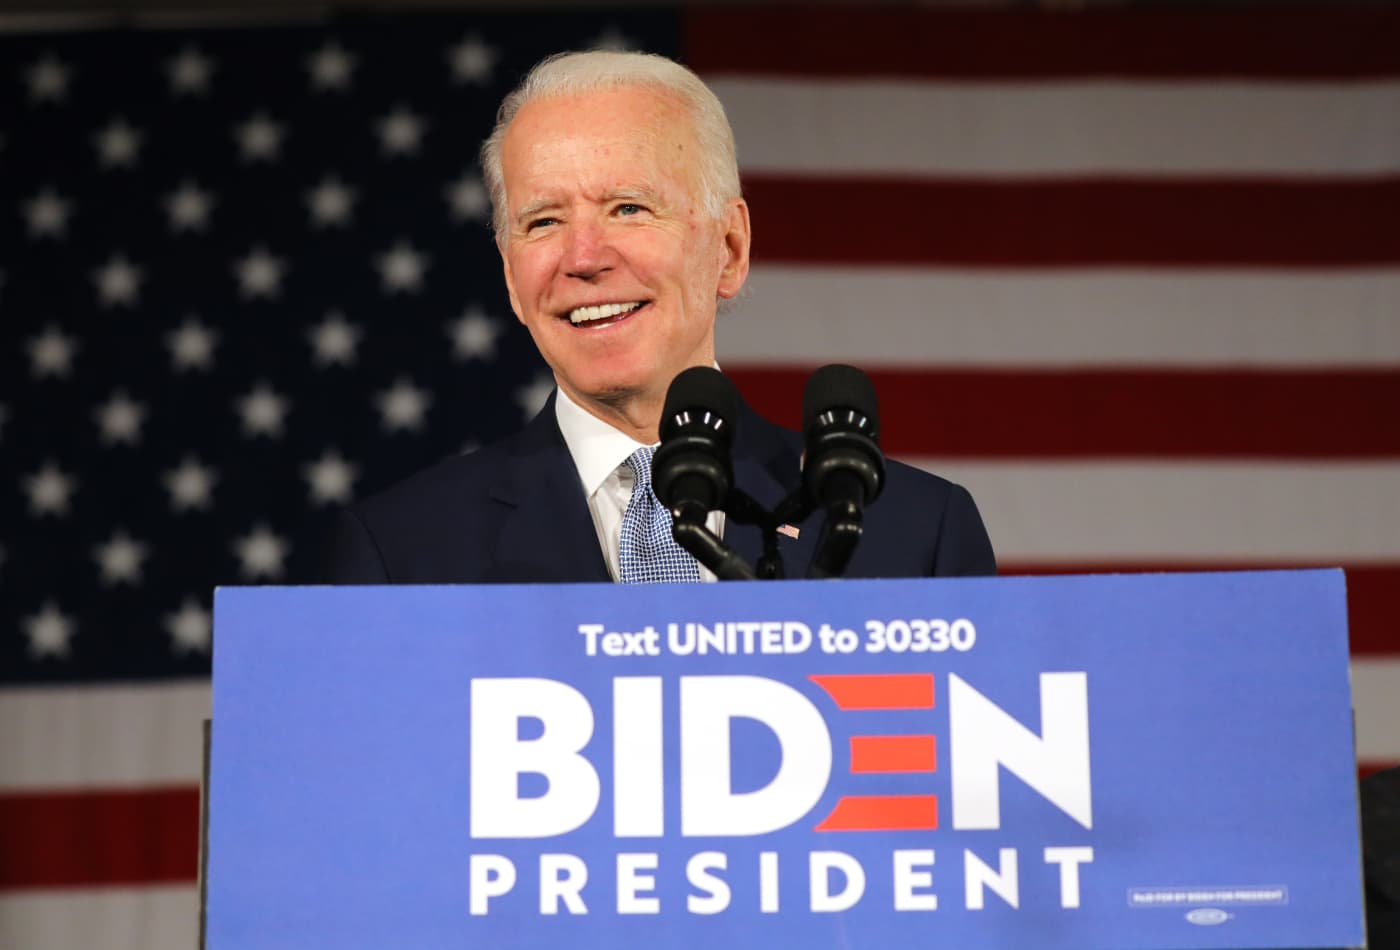 Joe Biden is the apparent winner of the Washington Democratic primary, NBC News reports